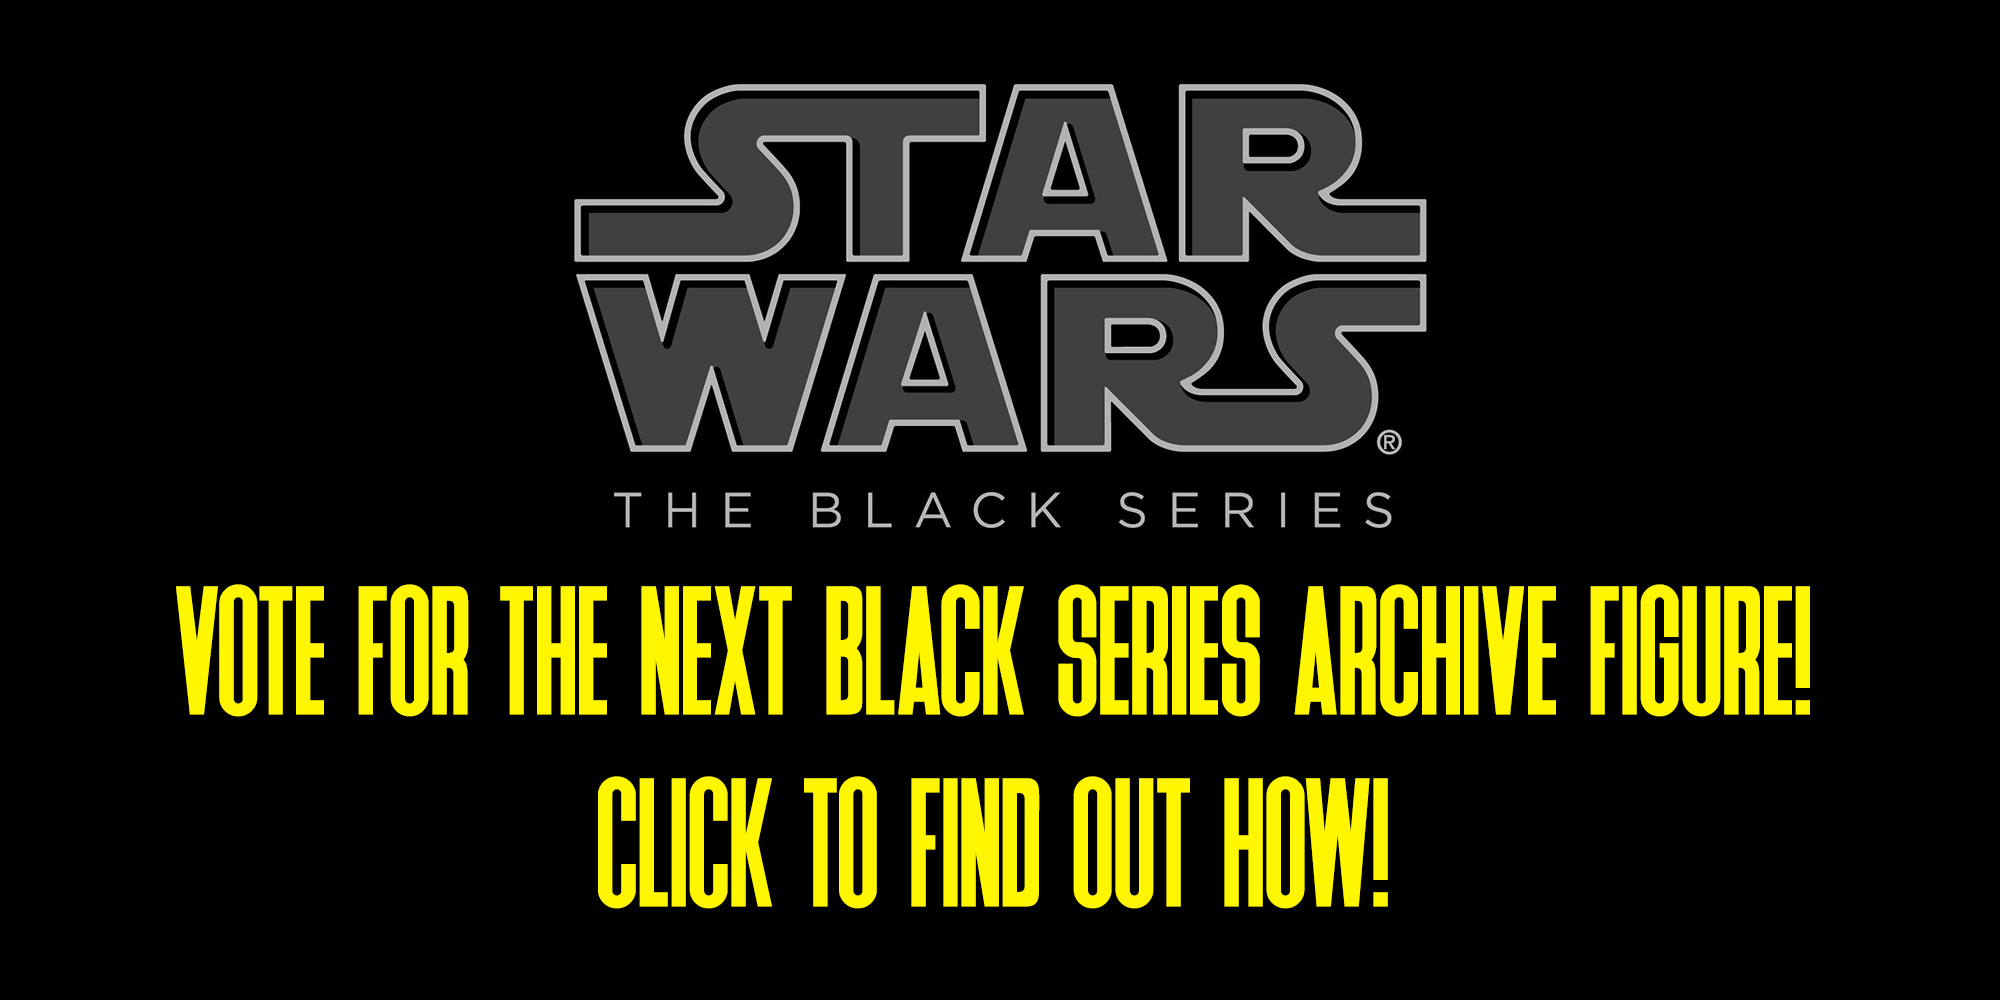 Star Wars Black Series Fan Vote